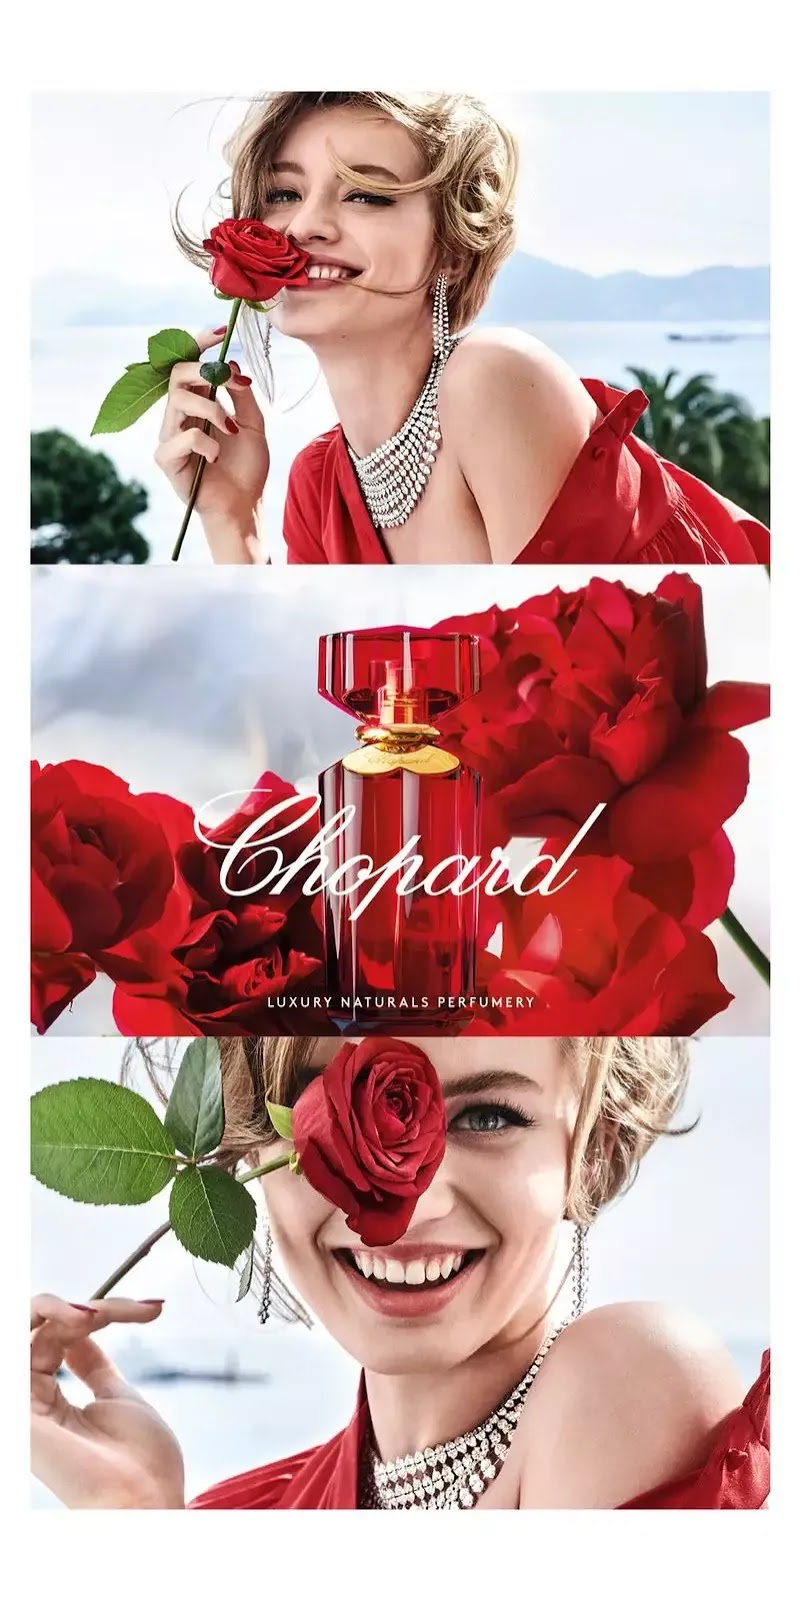 Model Giulia Maenza appears in Chopard Love Chopard perfume campaign